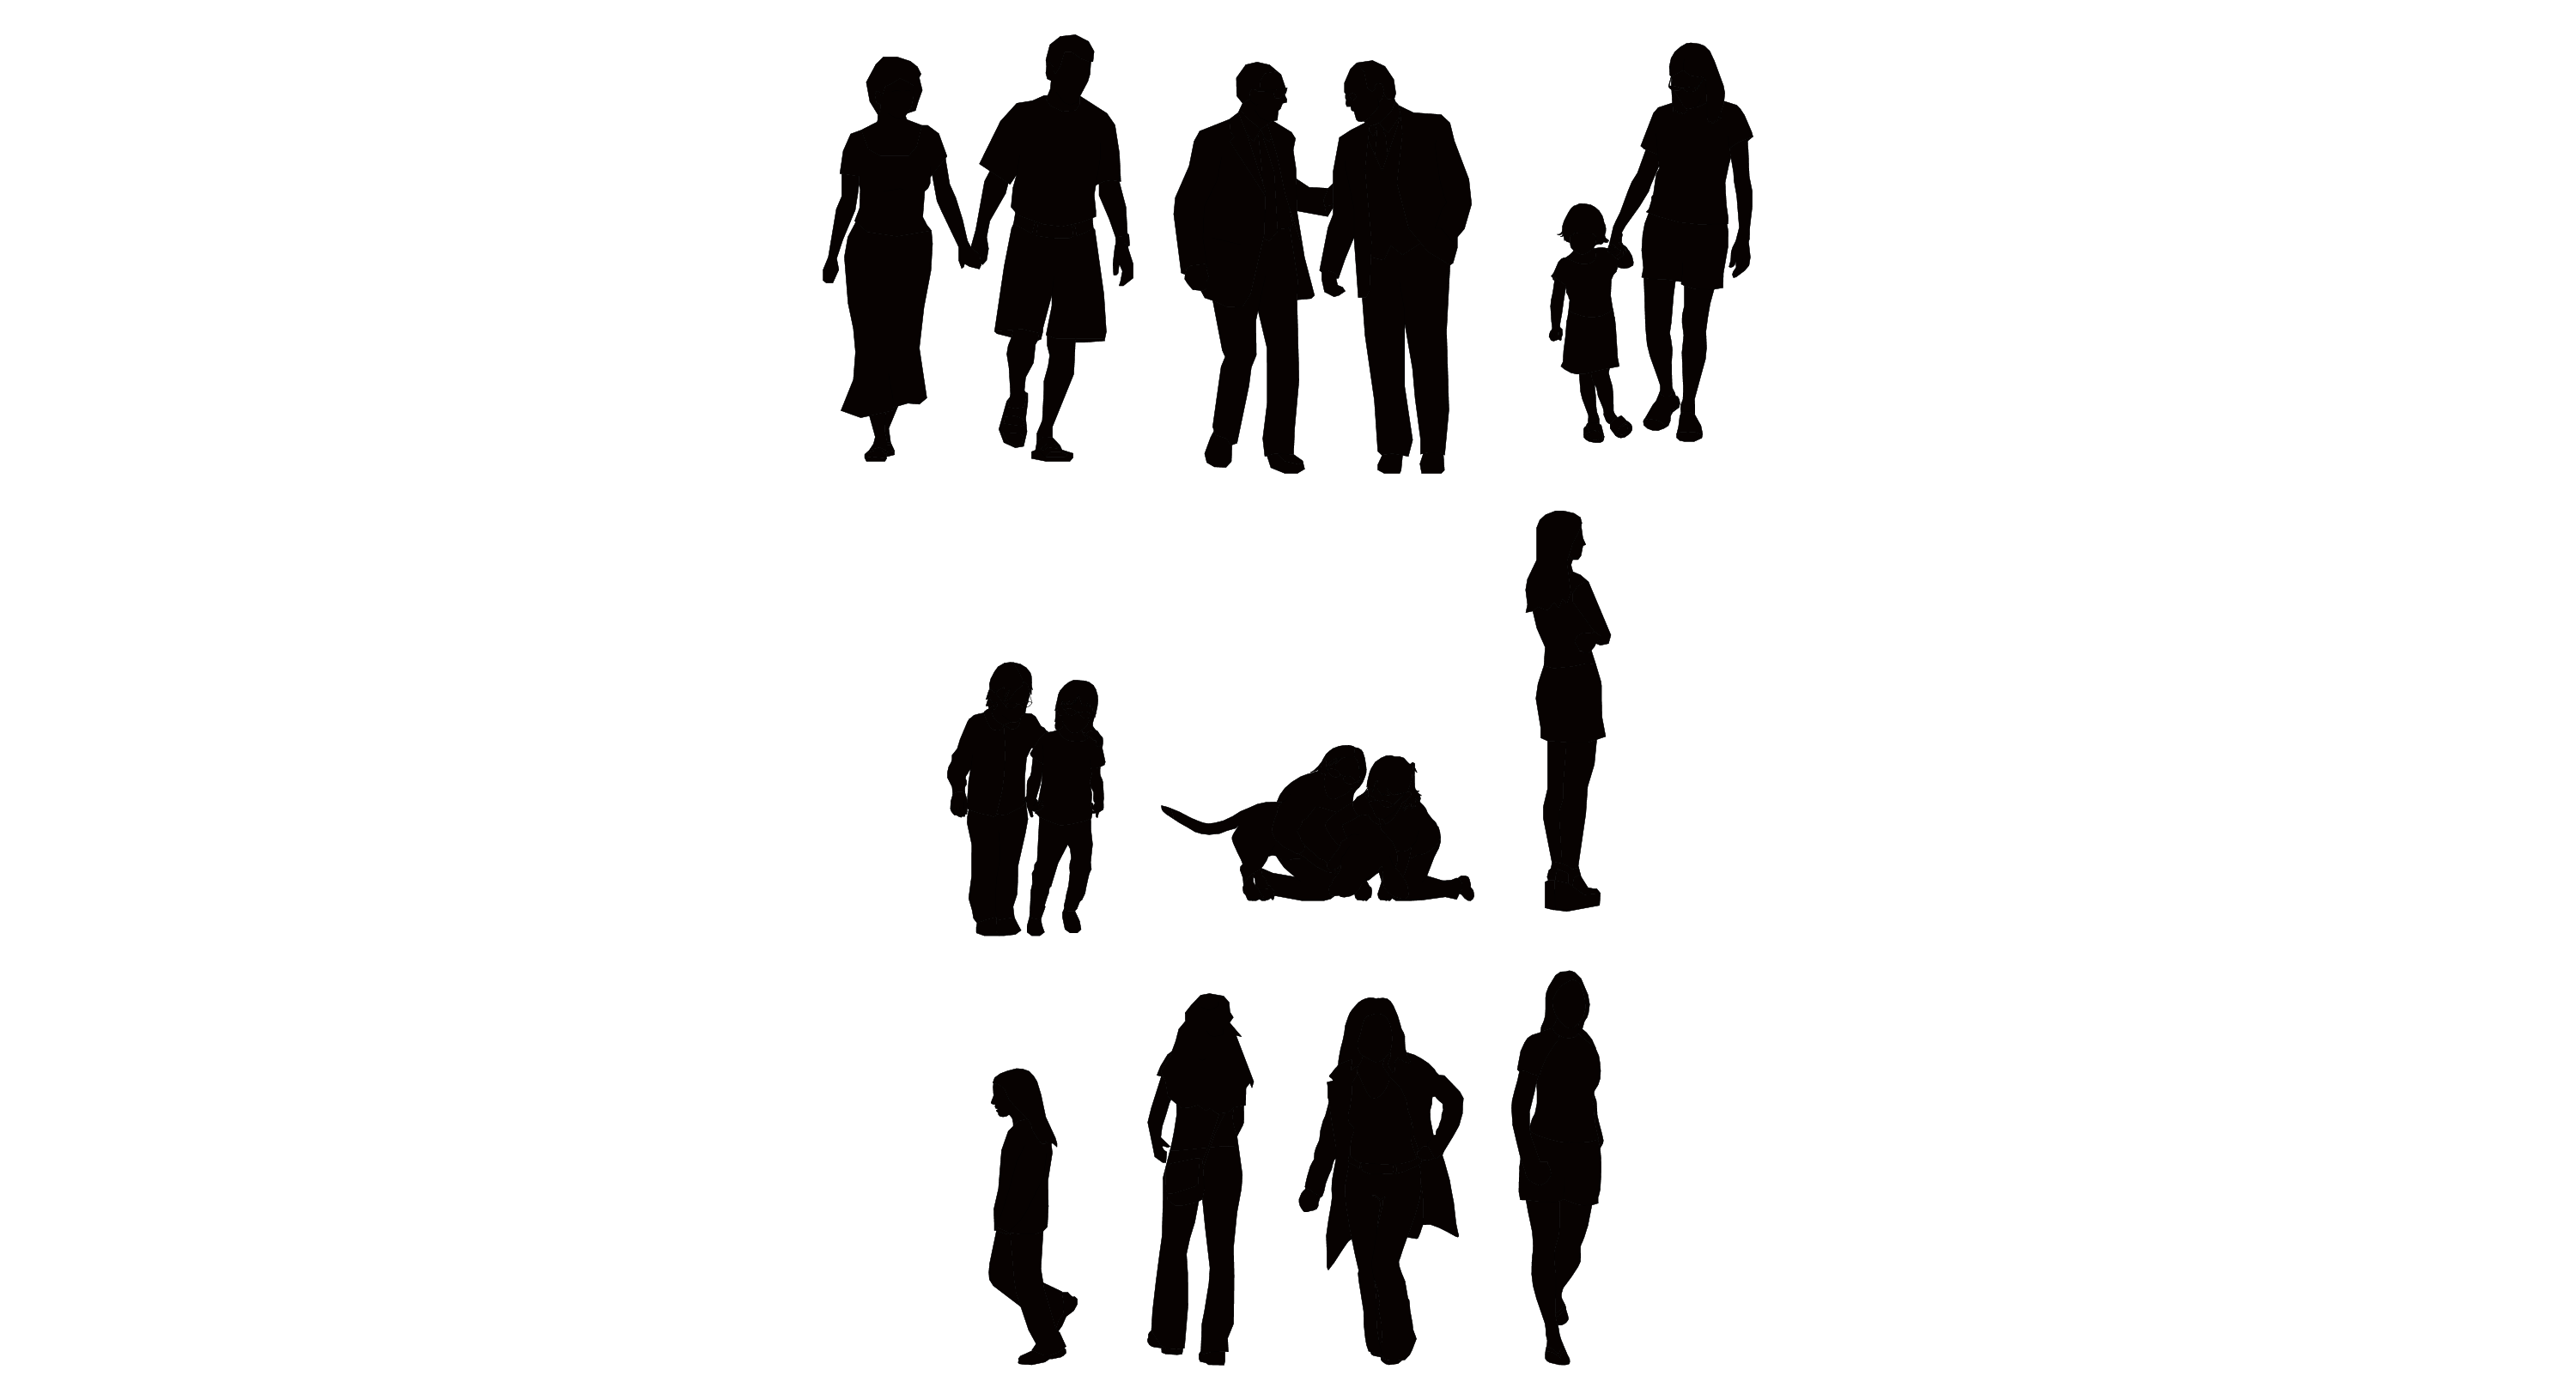 18 Sitting People Vector Graphics Images - Vector Business ...